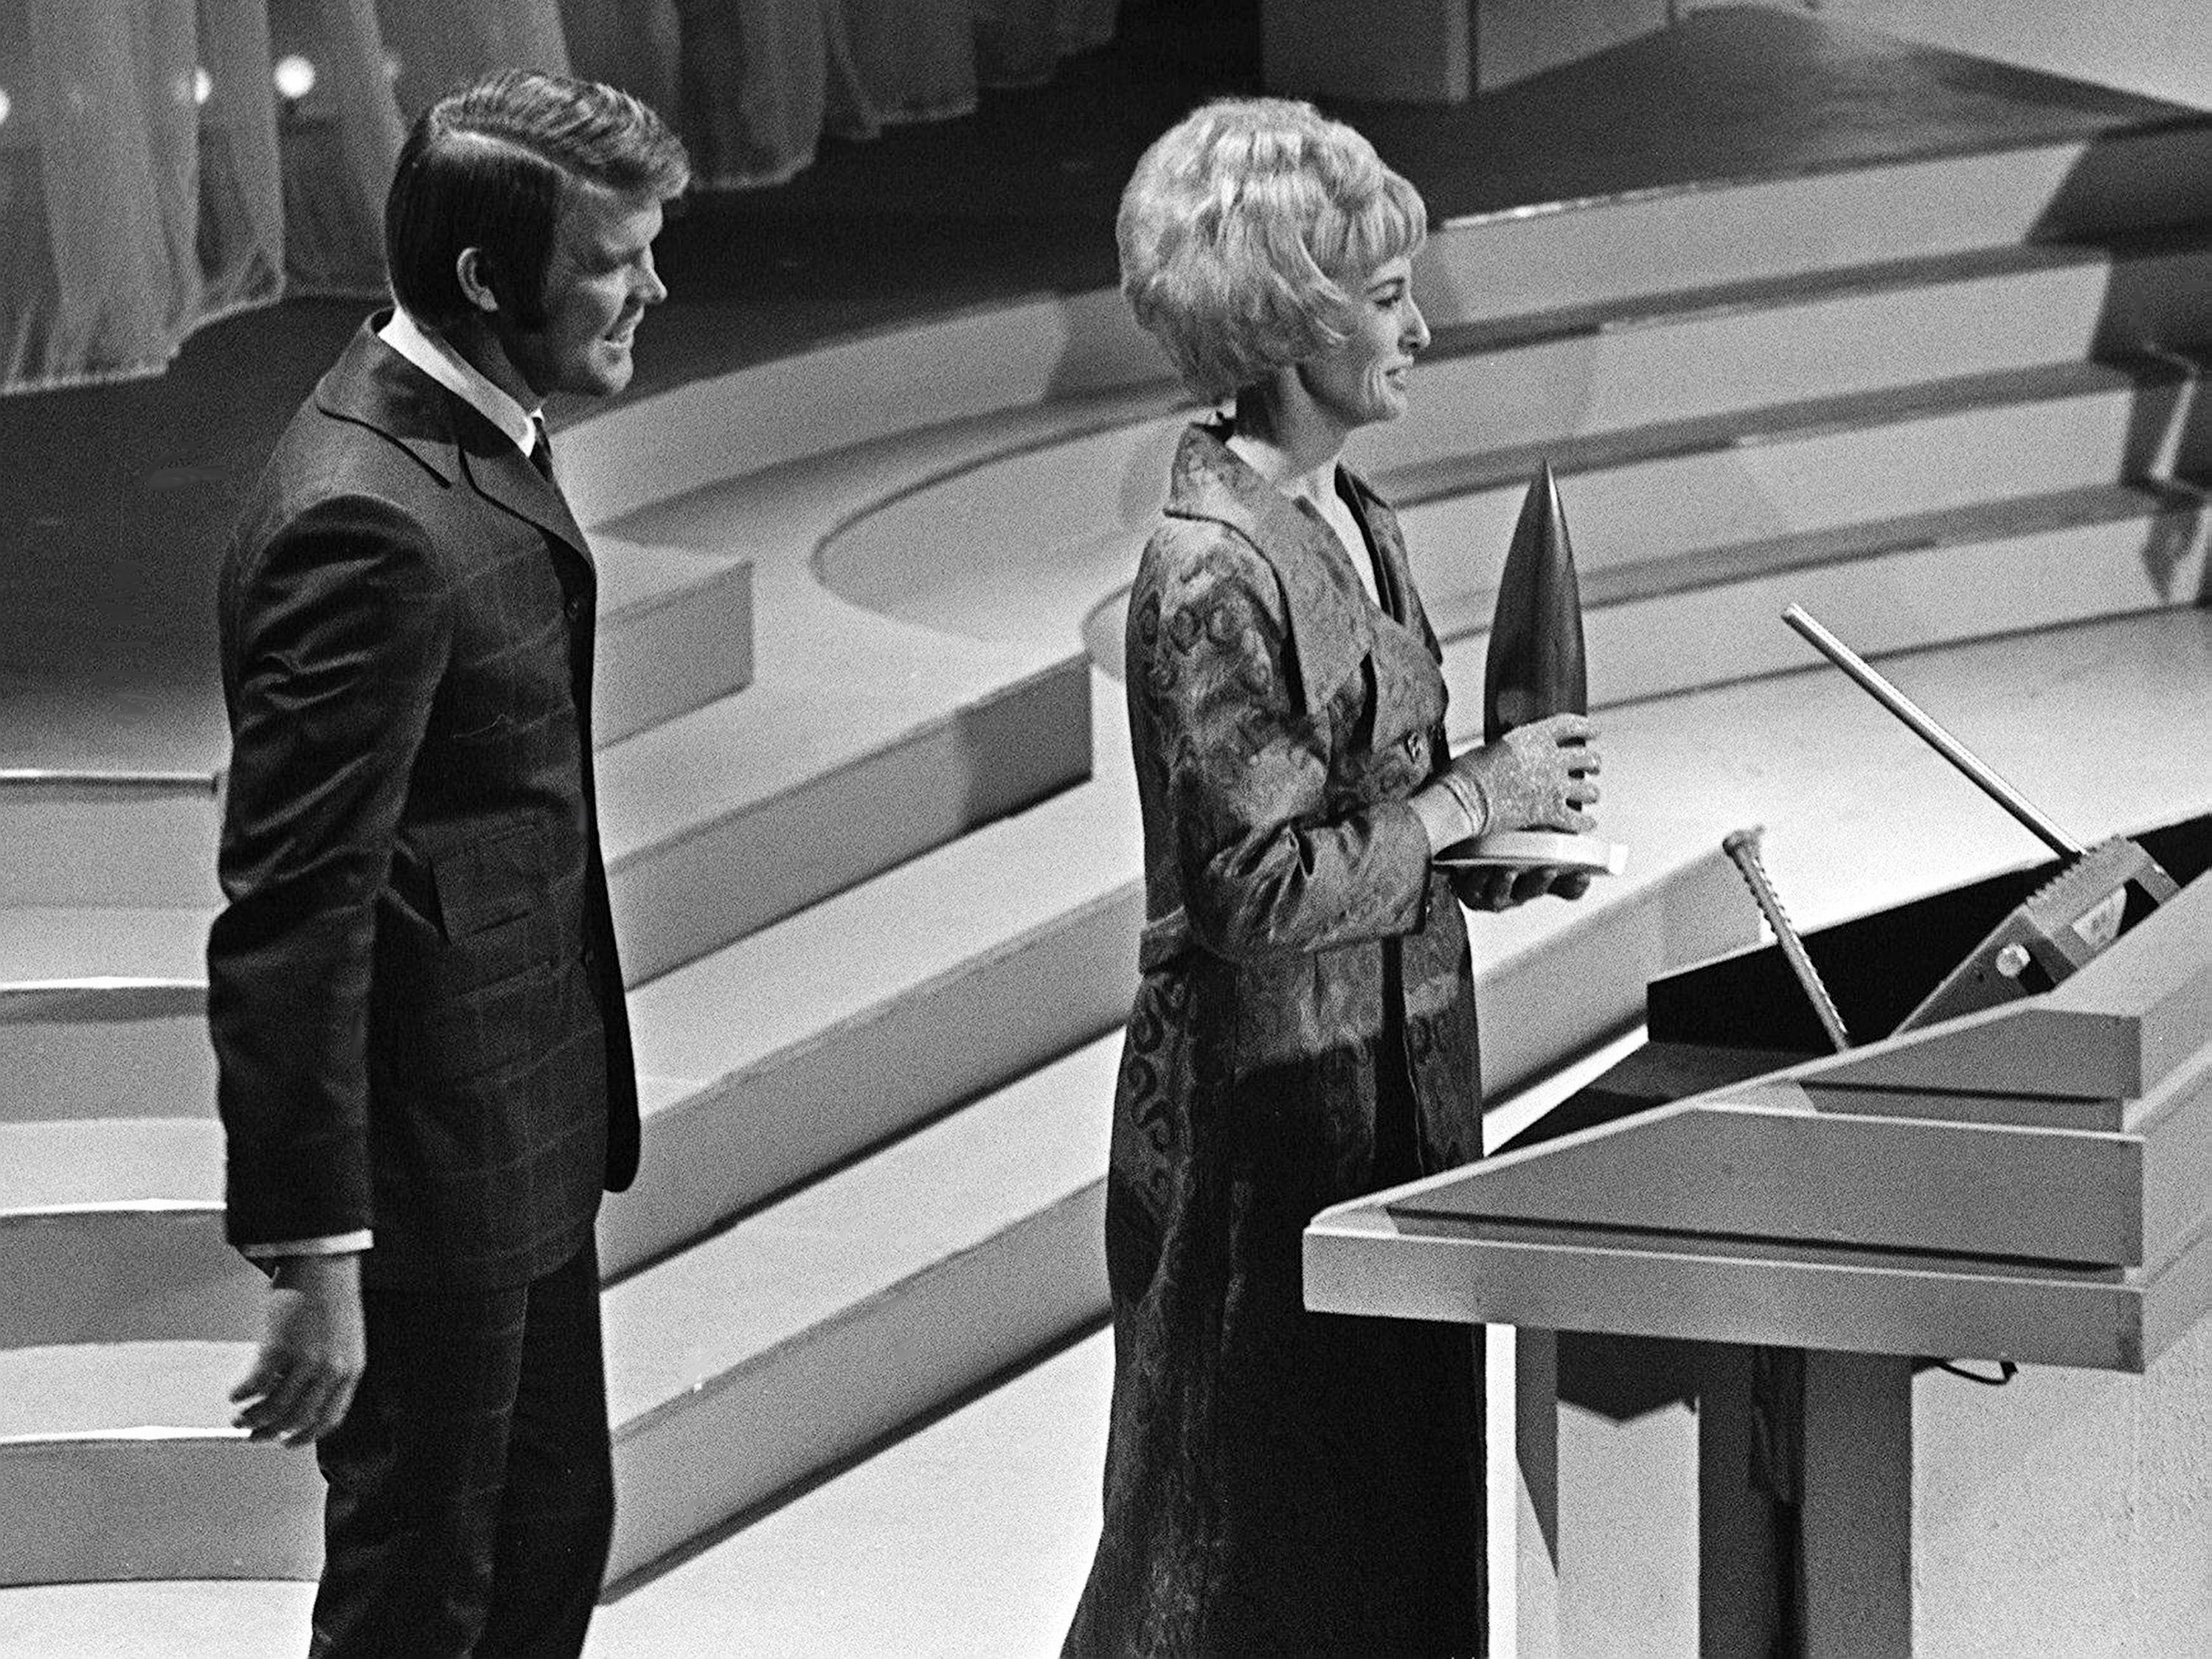 Tammy Wynette speaks to the crowd after accepting the Female Vocalist of the Year award from presenter Glen Campbell during the second annual CMA Awards show at the Ryman Auditorium on Oct. 18, 1968.